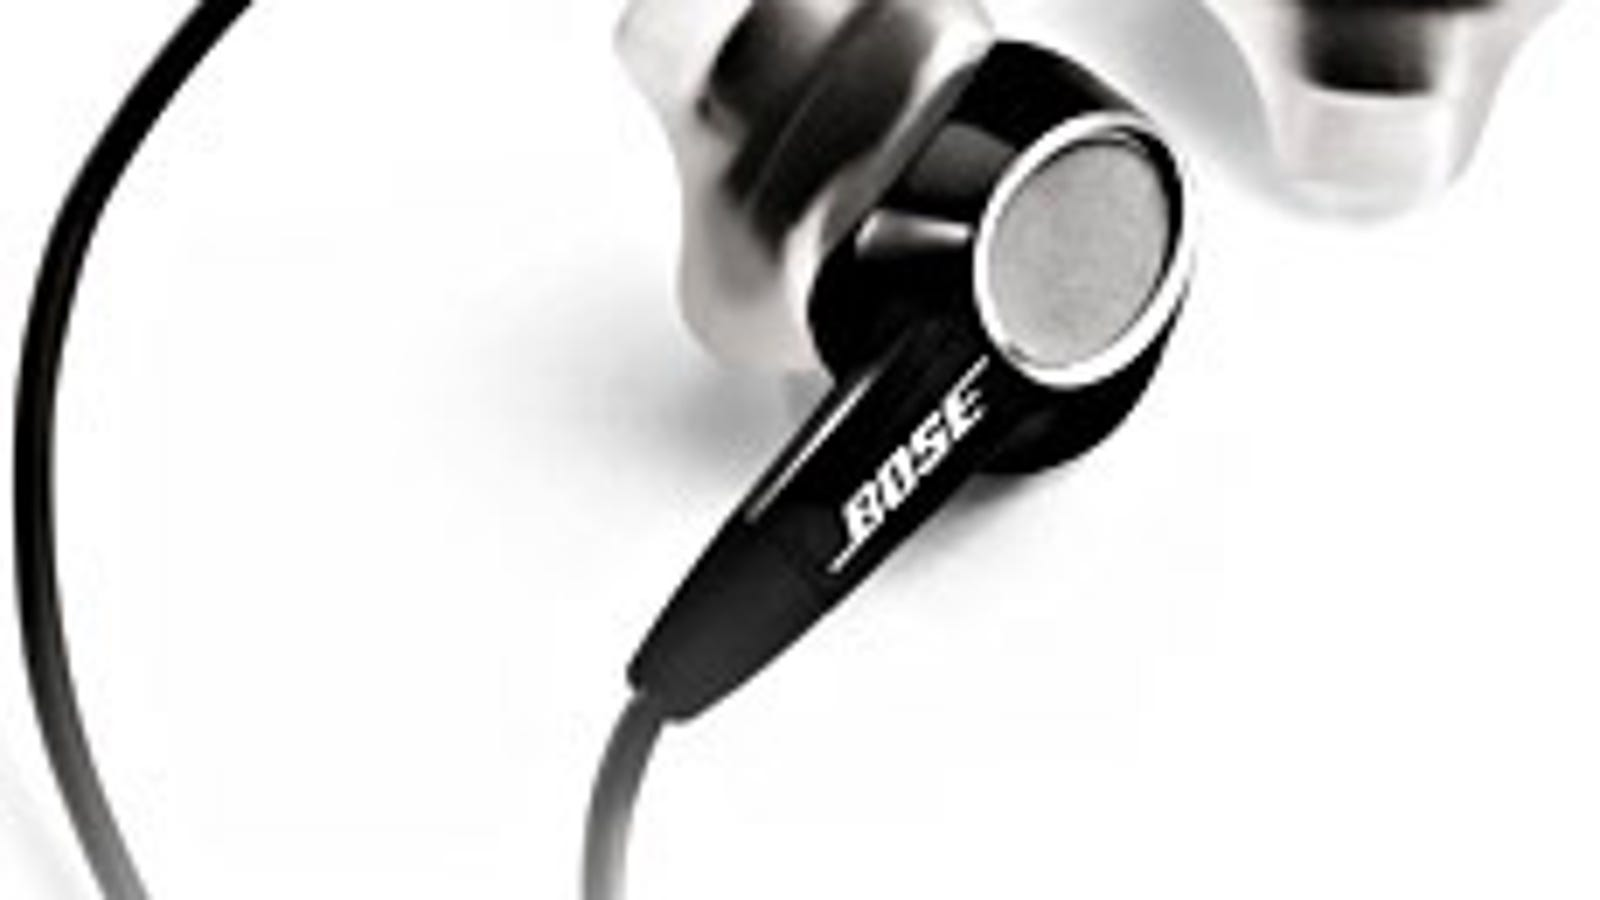 bose soundsport wireless headphones clip